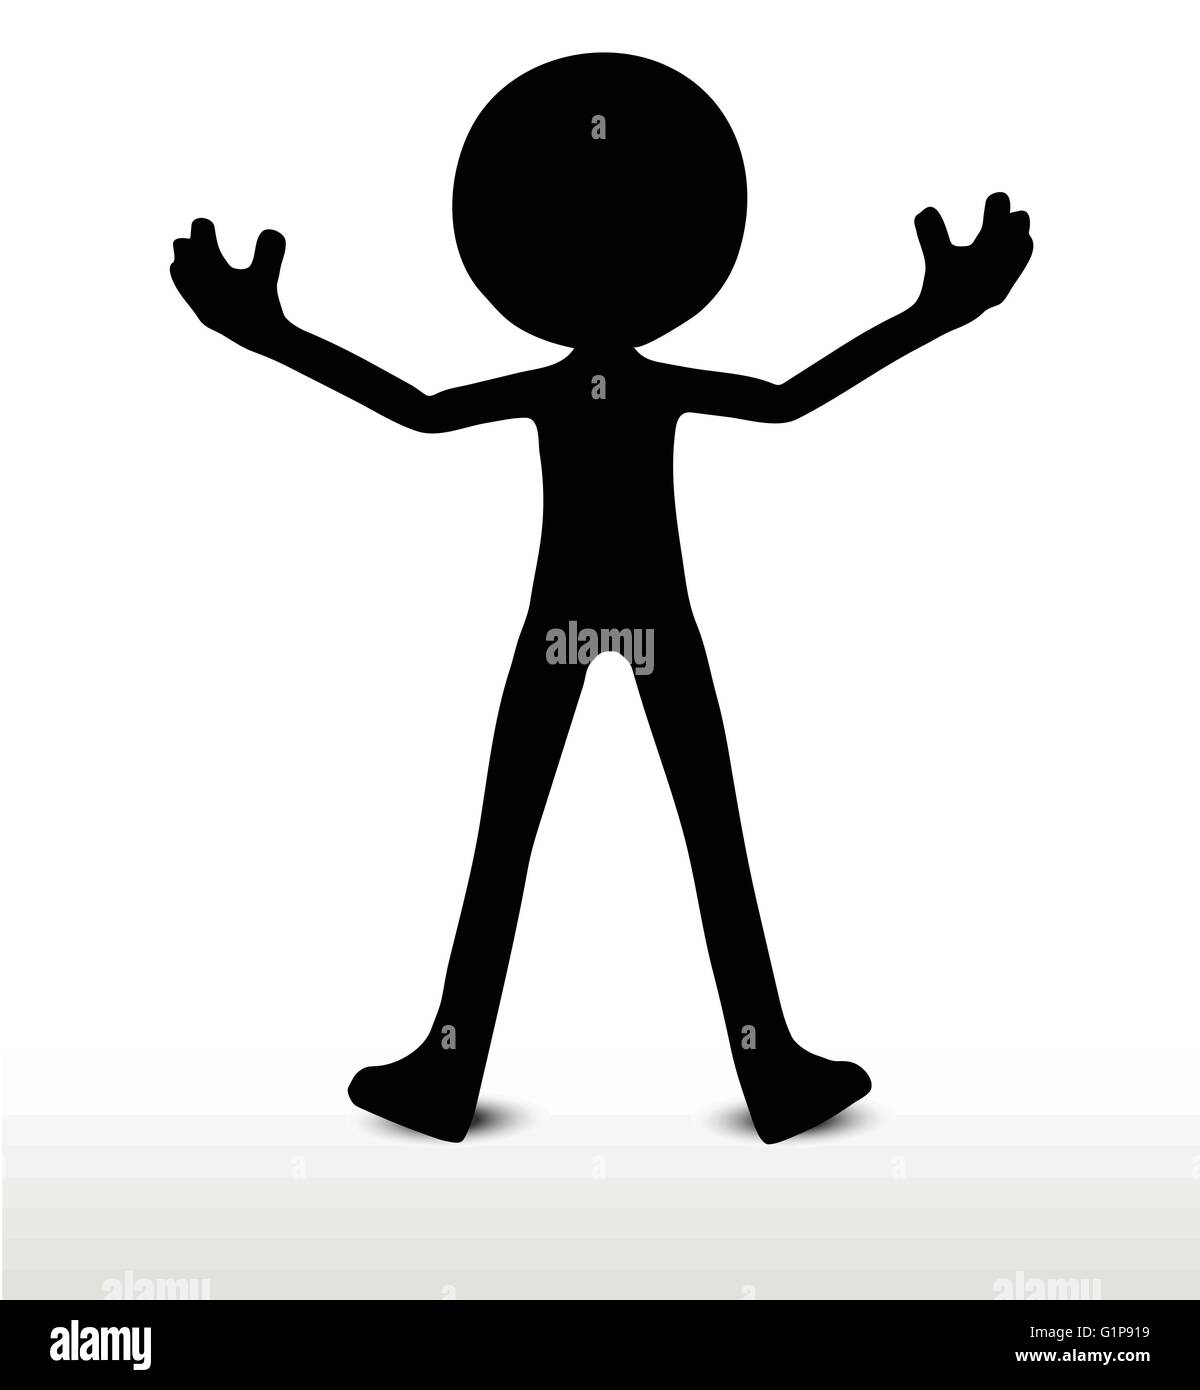 3d man silhouette, isolated on white background, power pose - Stock Vector